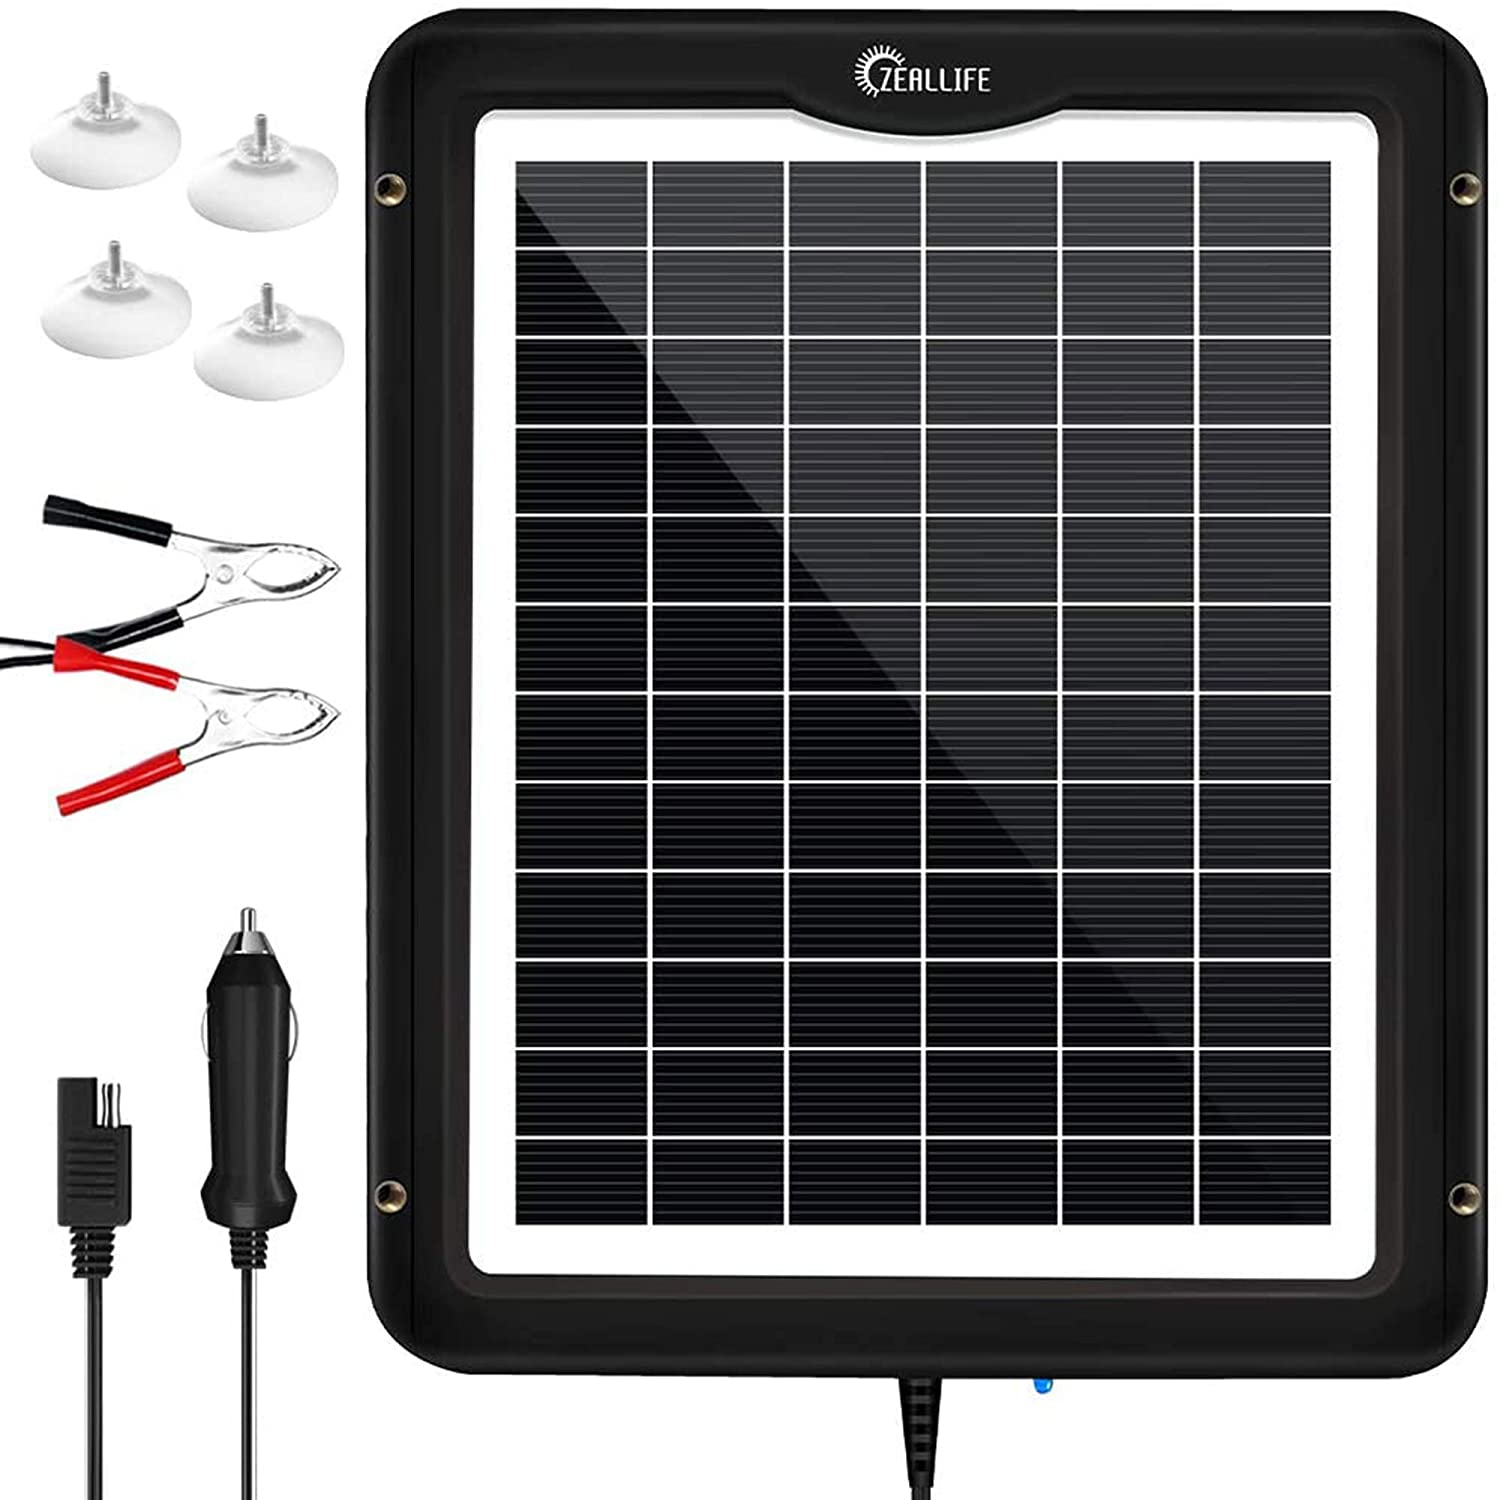 Solar Battery Charger By ZEALLIFE